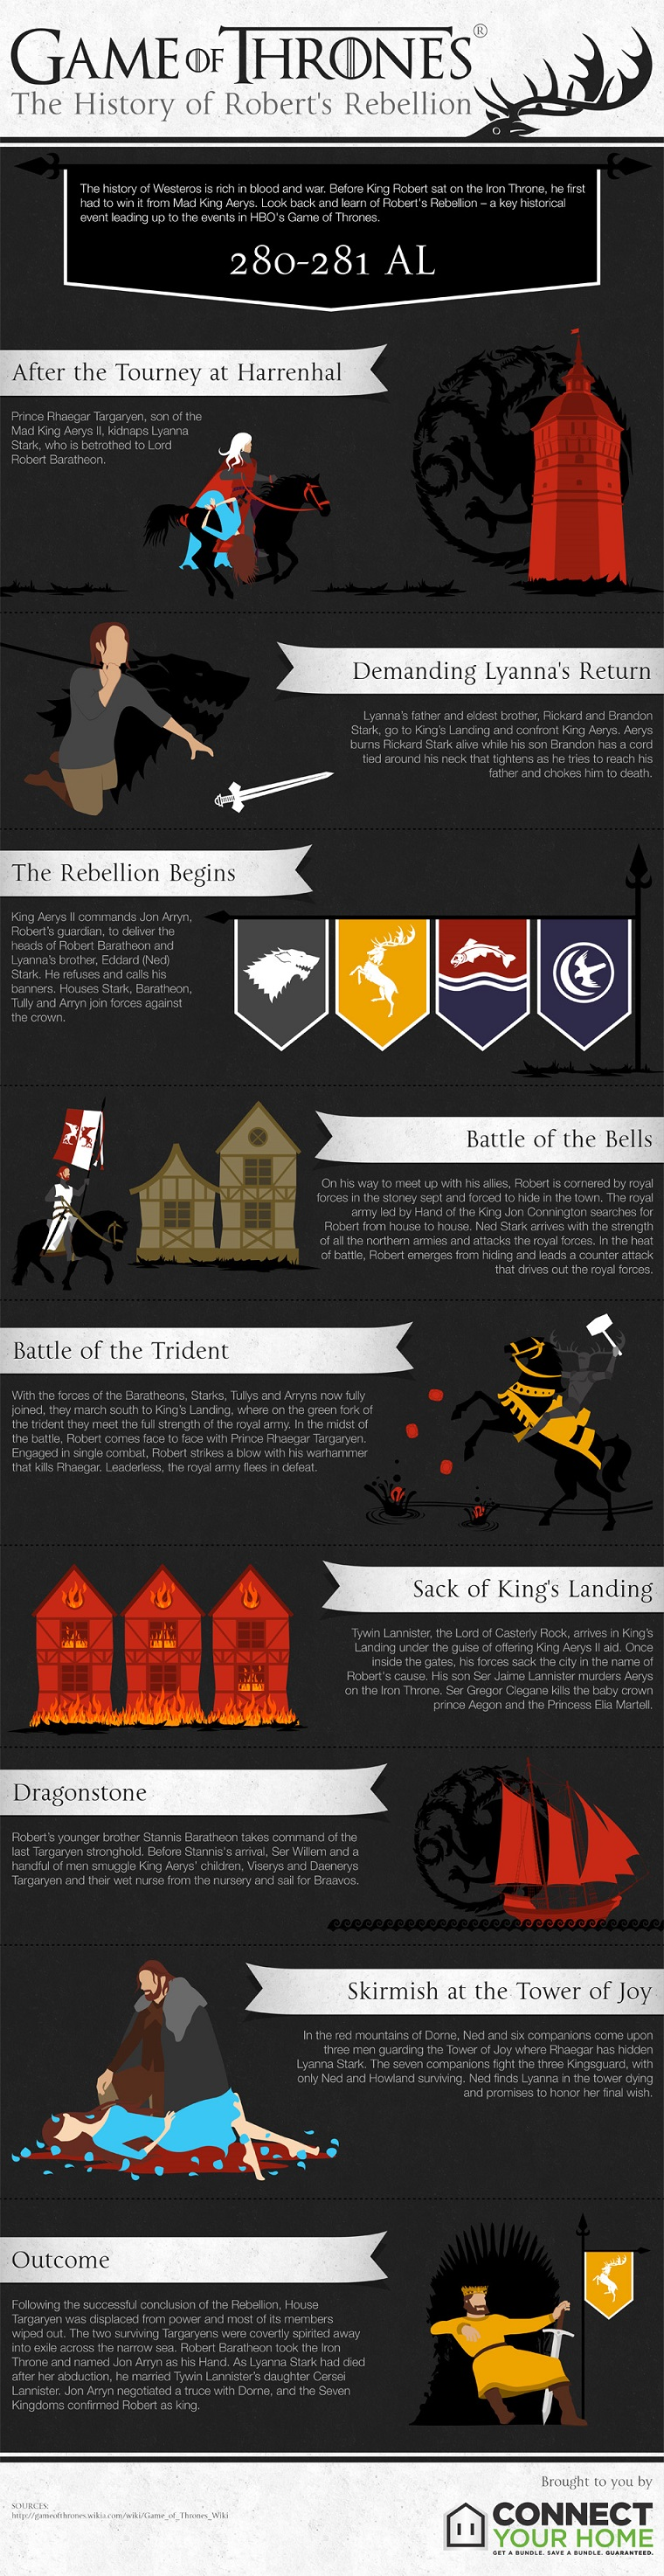 Game of Thrones - The History of Robert's Rebellion infographic